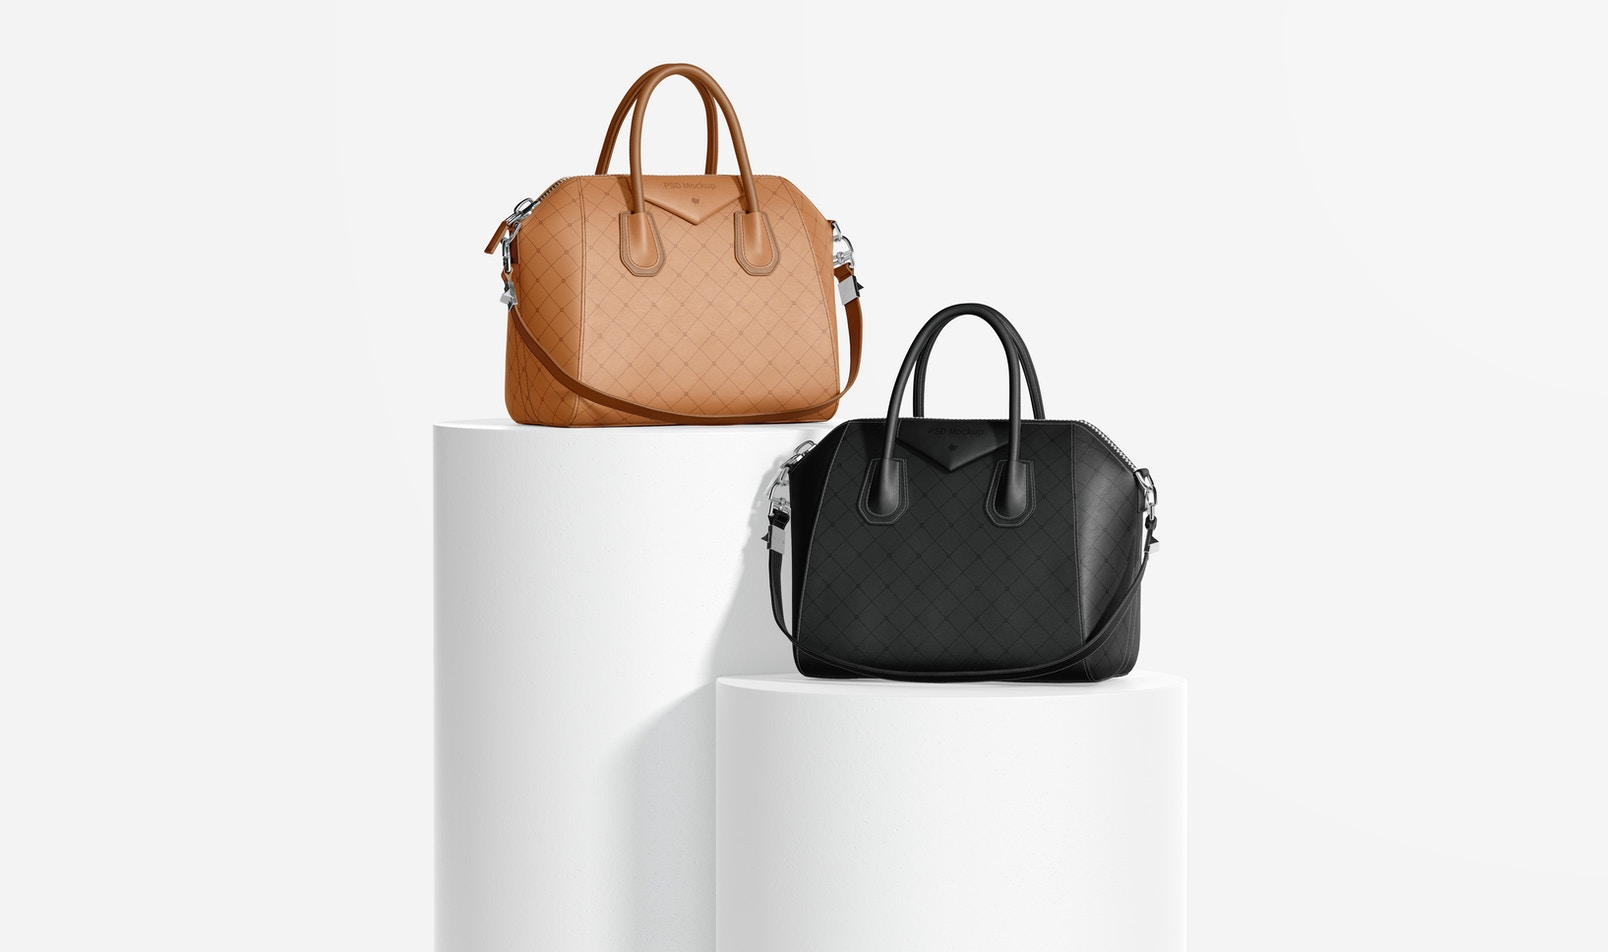 Women's Leather Bags Mockup